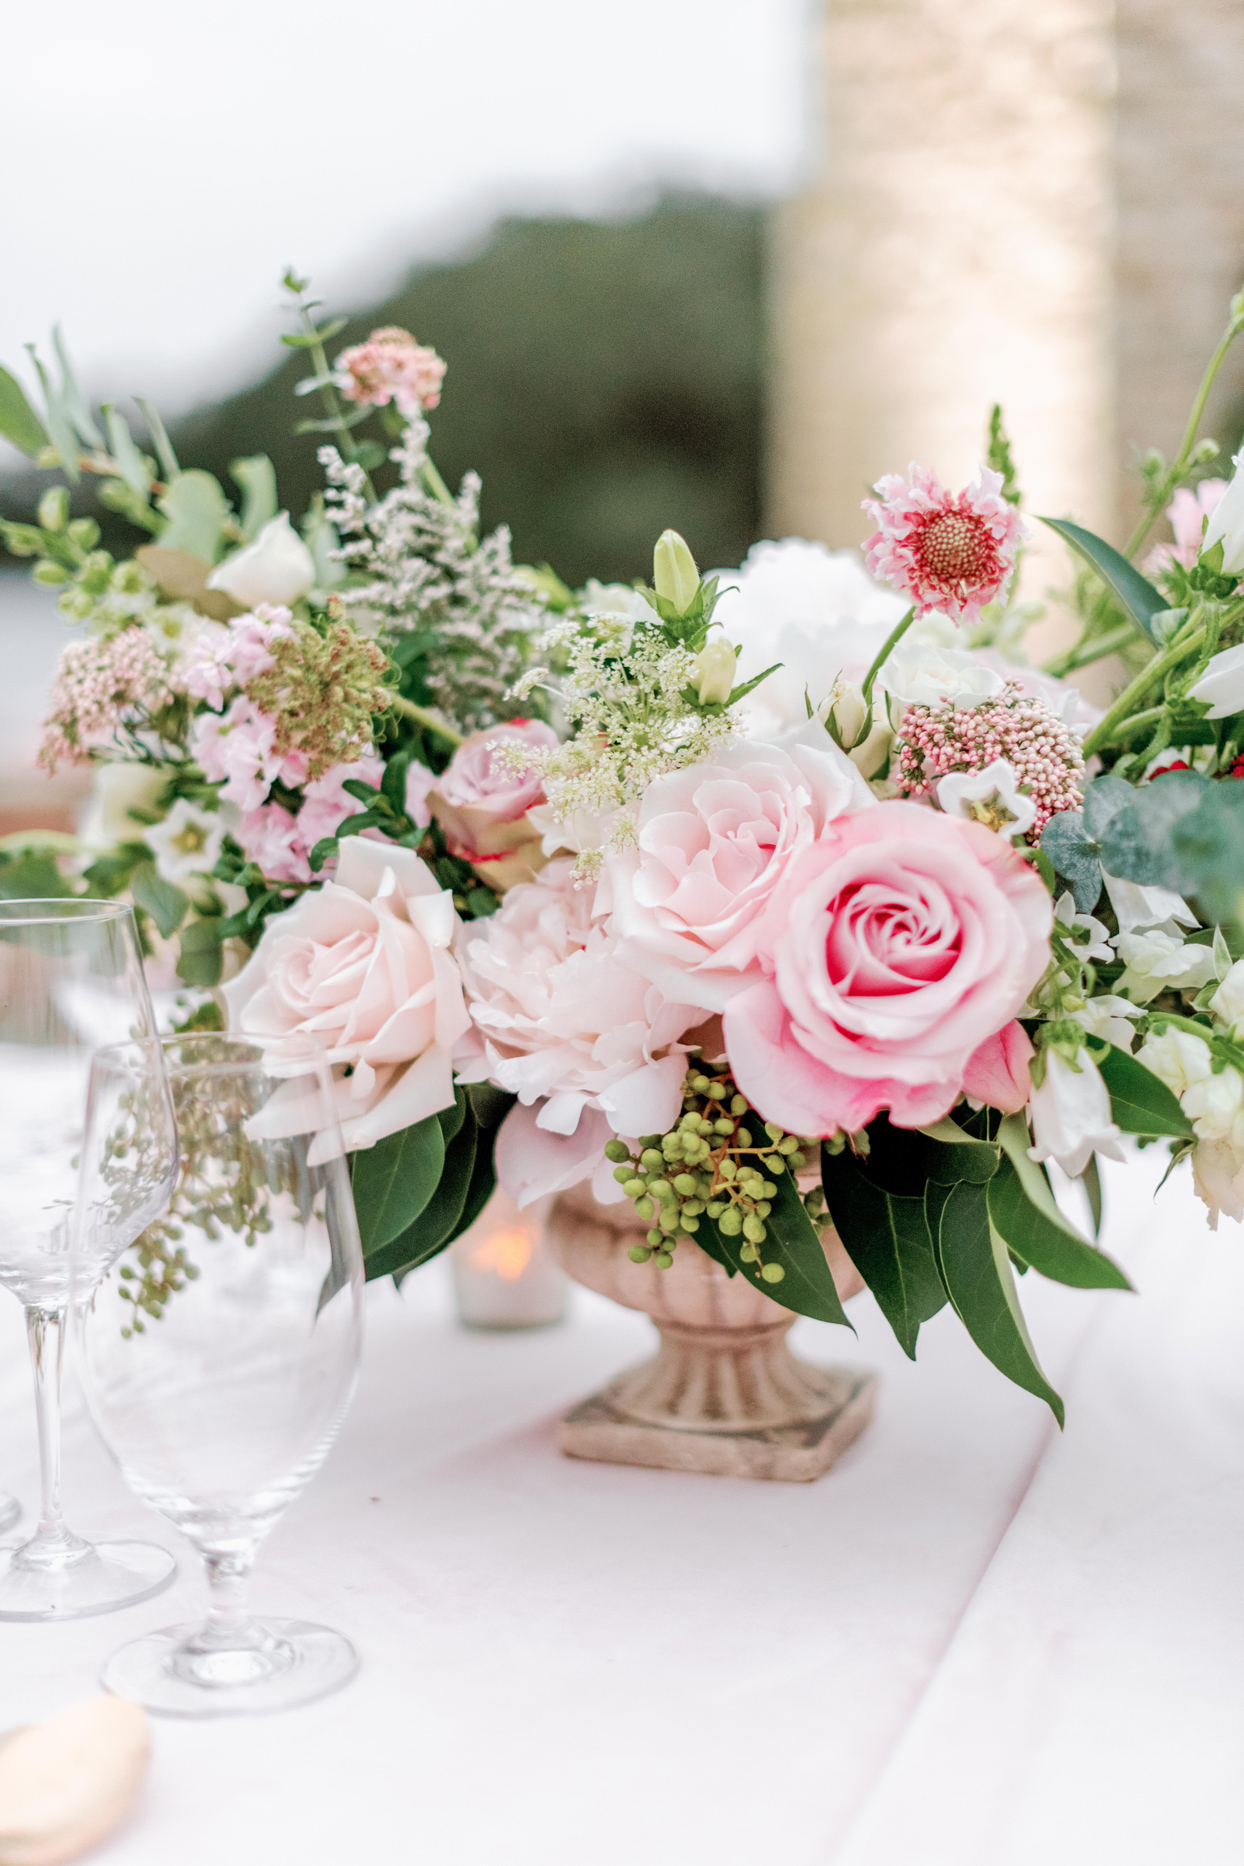 pink and white floral arrangement on table